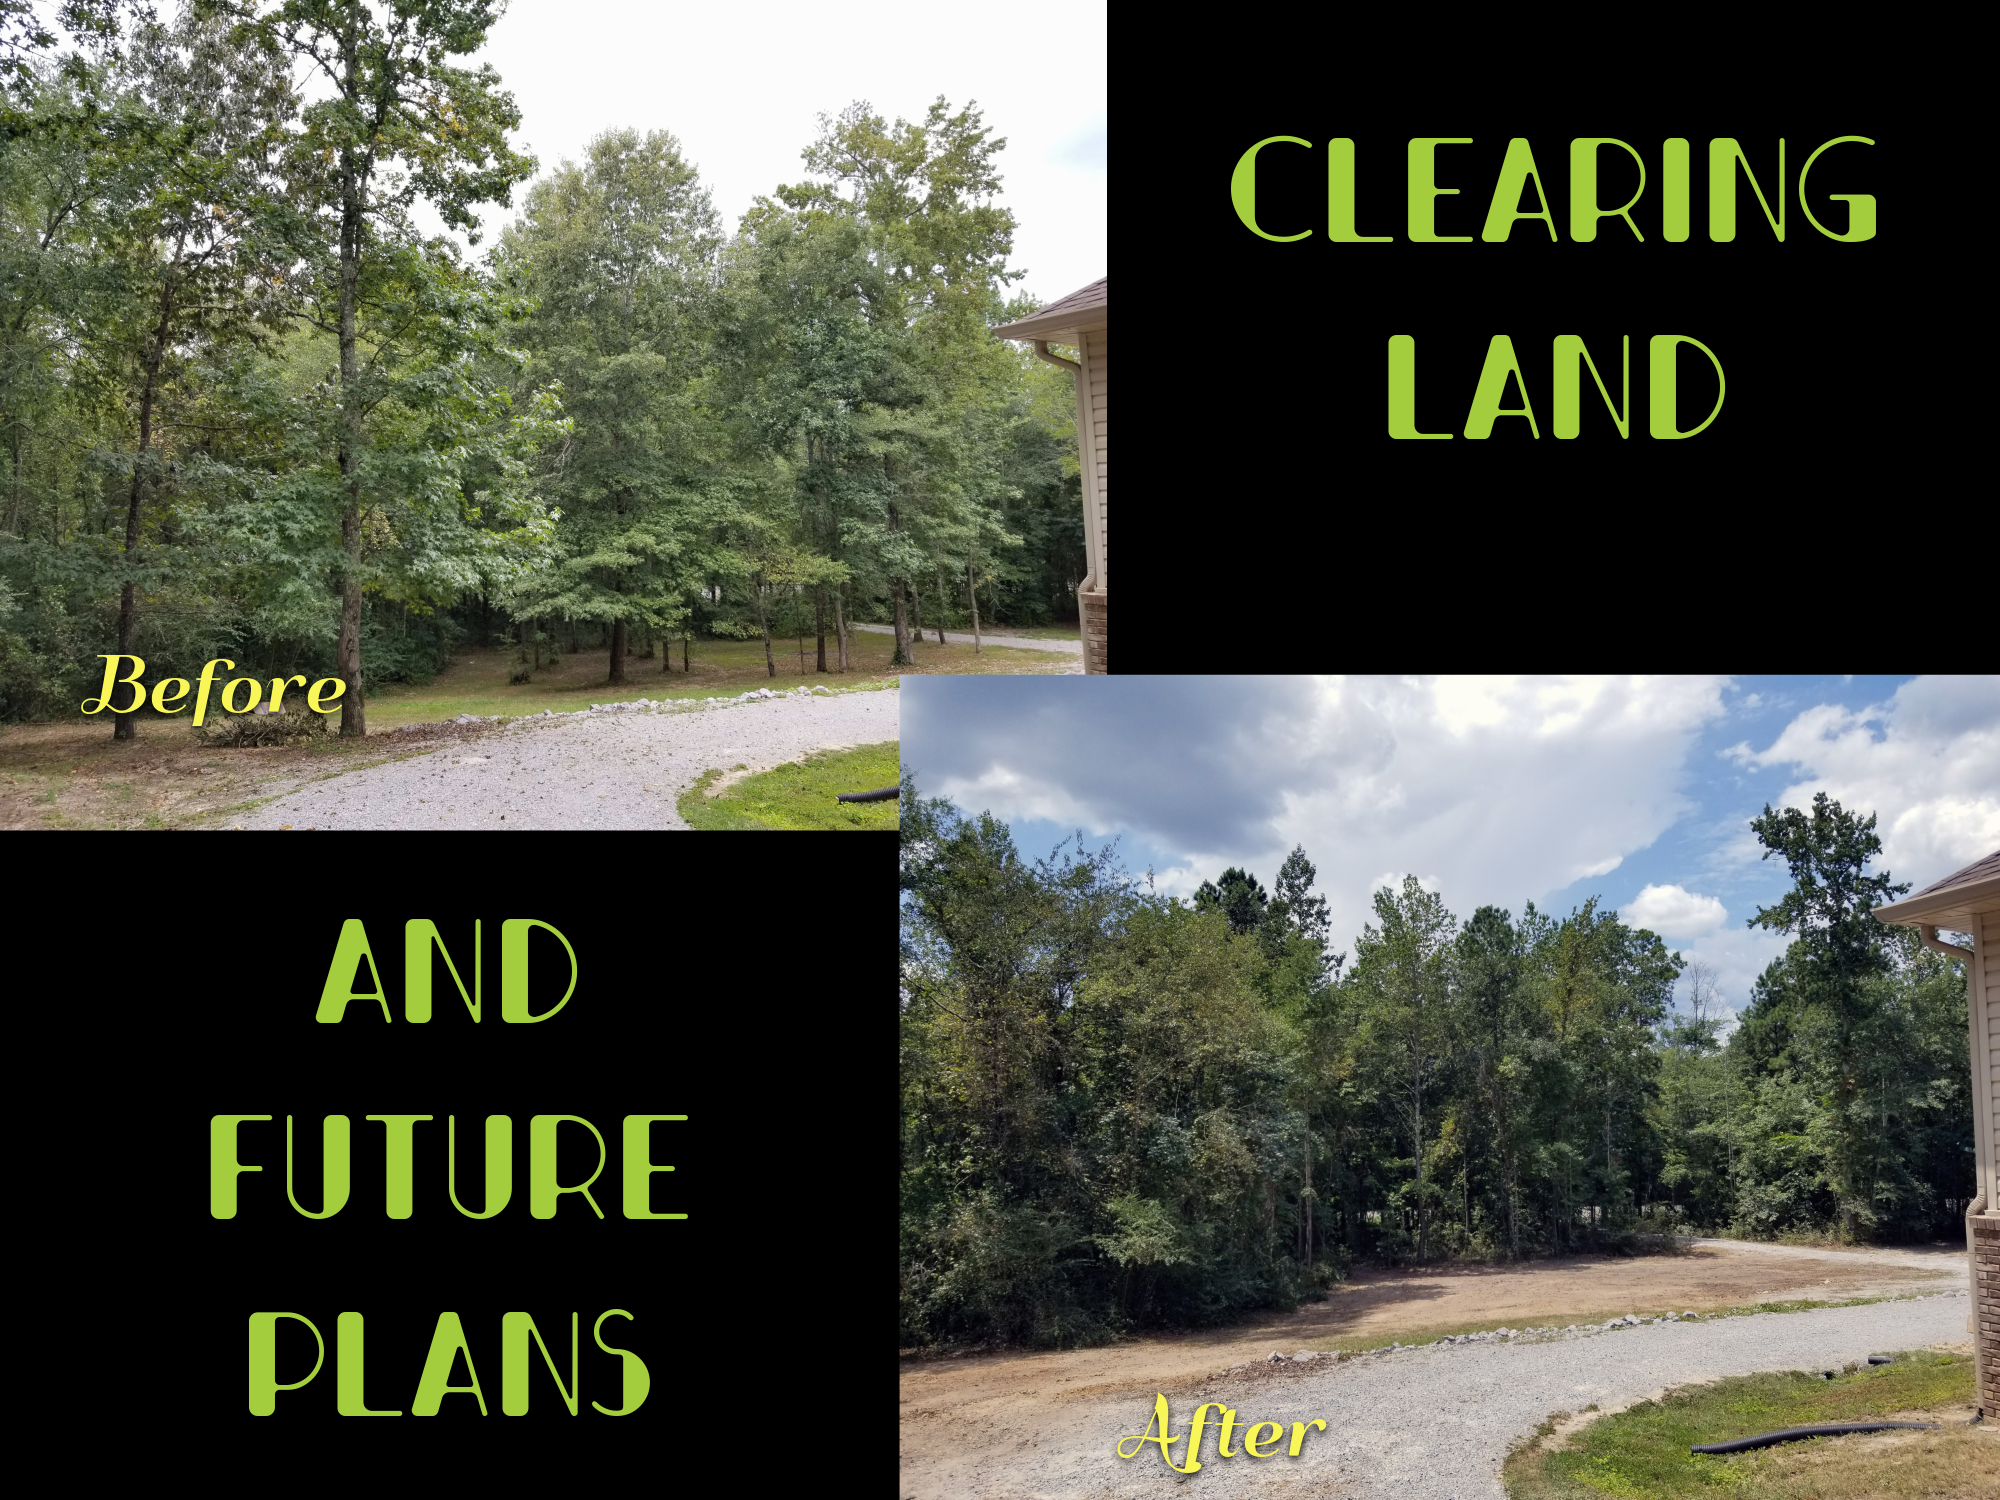 Clearing Land and Plans